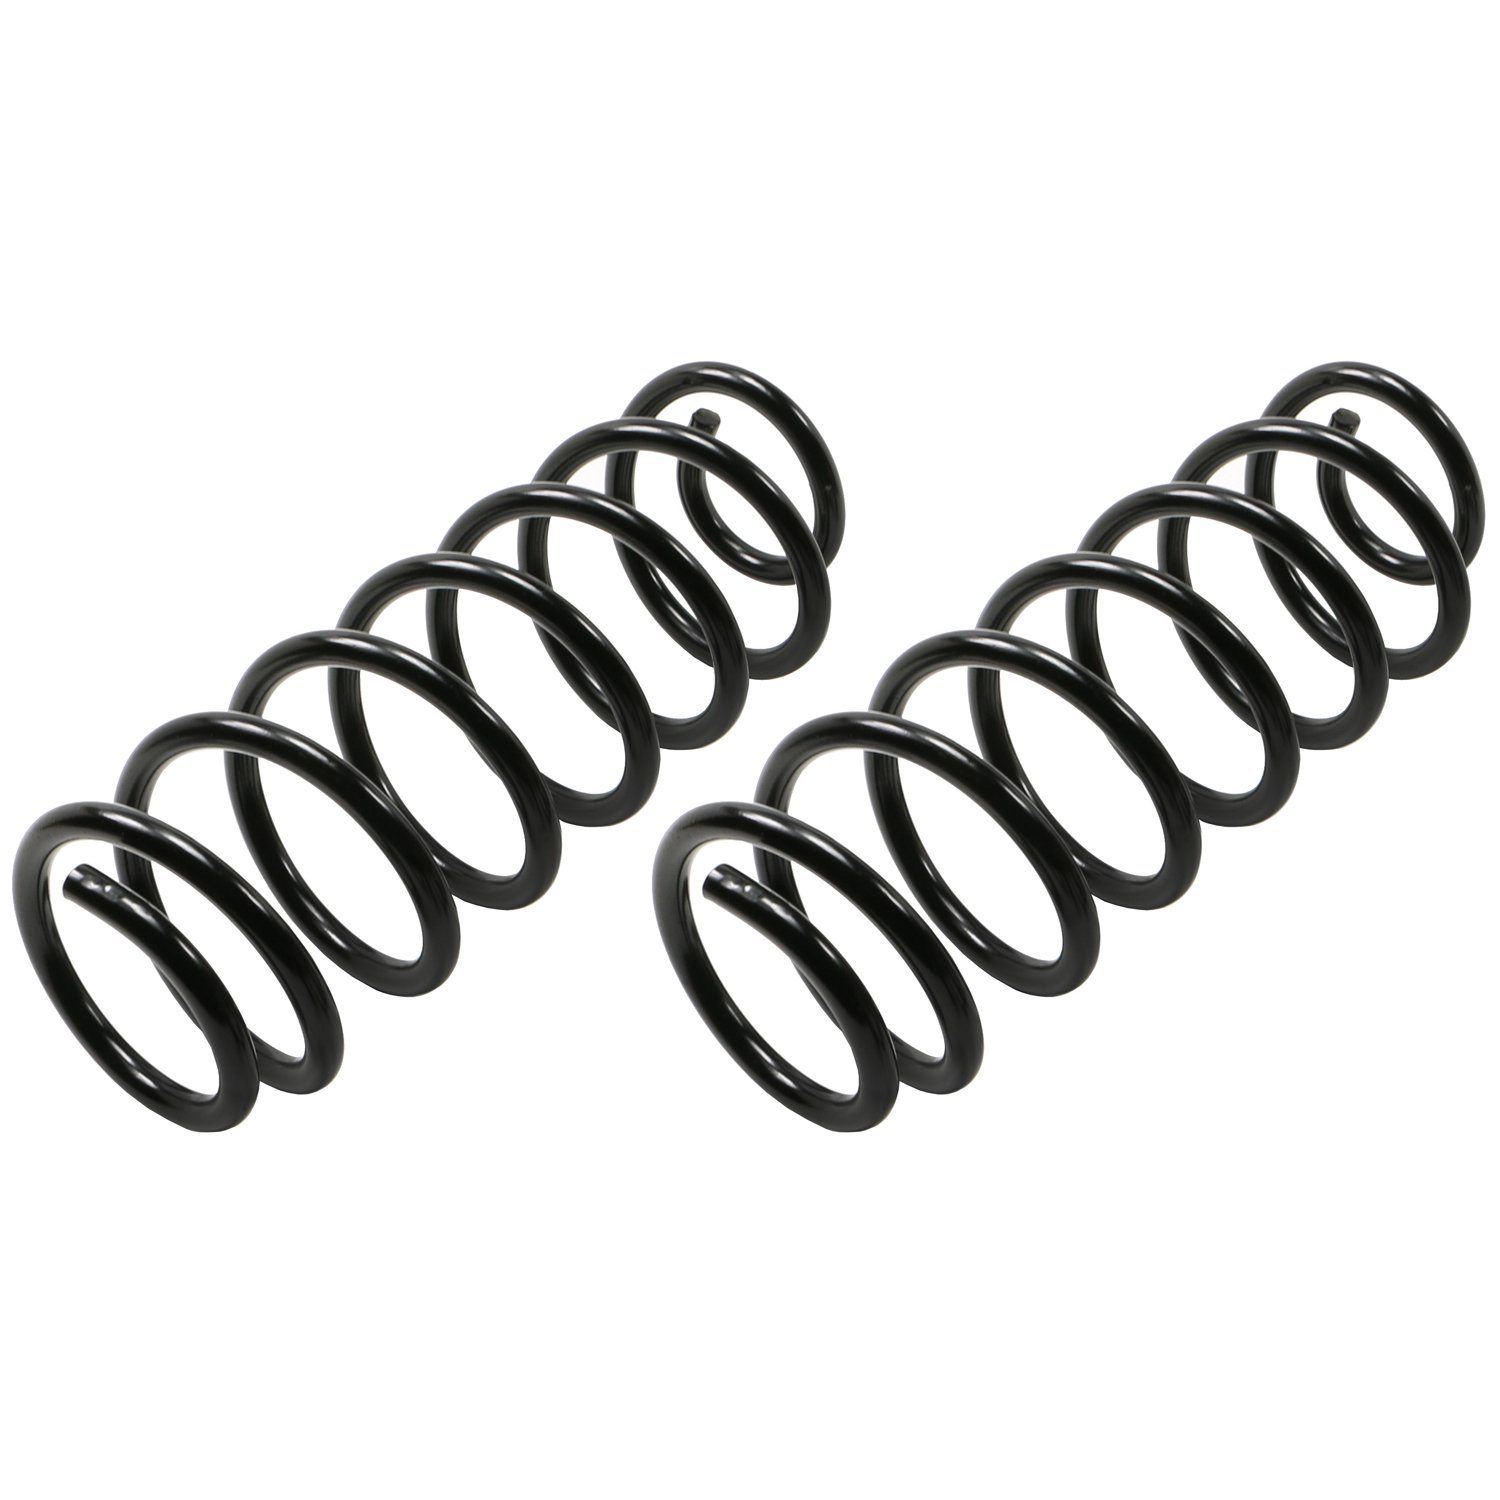 Moog 81671 Coil Spring Set for Ford Fusion, Mercury Milan